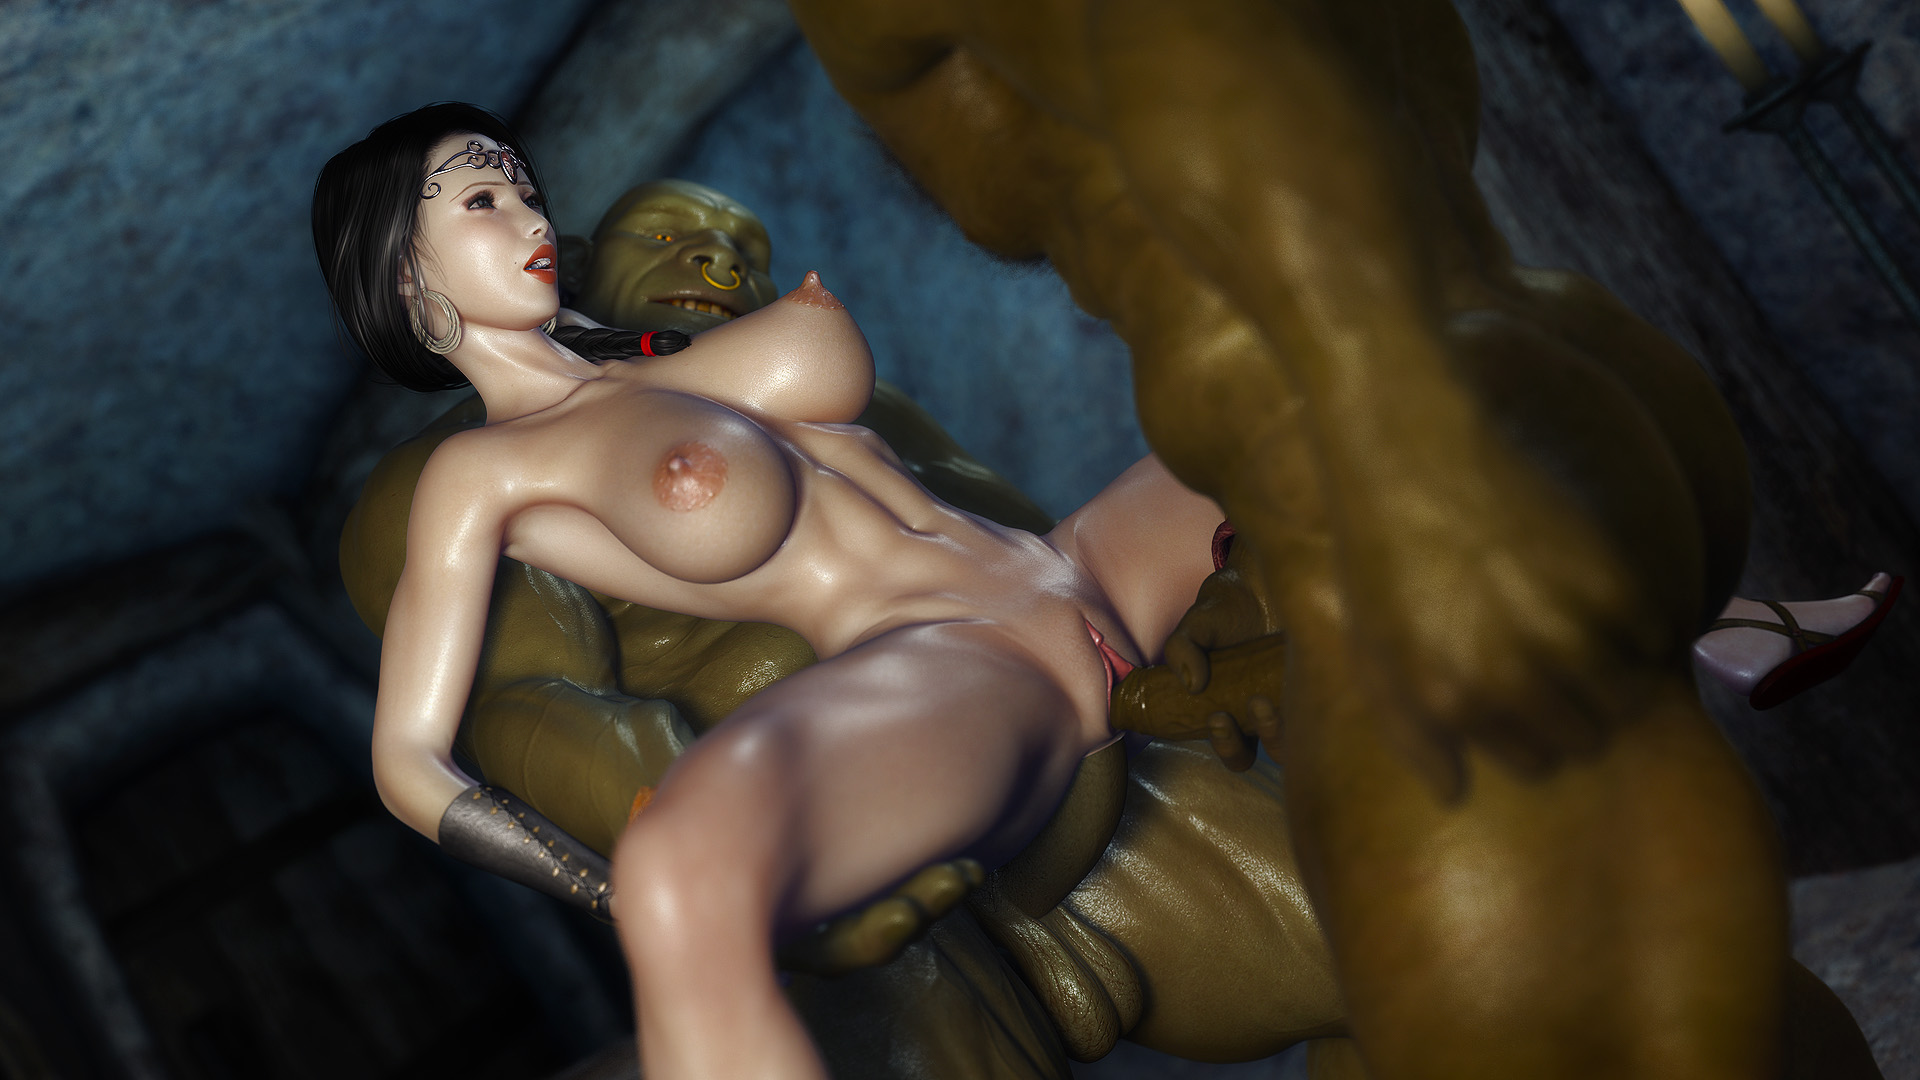 Mass effect literotica erotic scenes